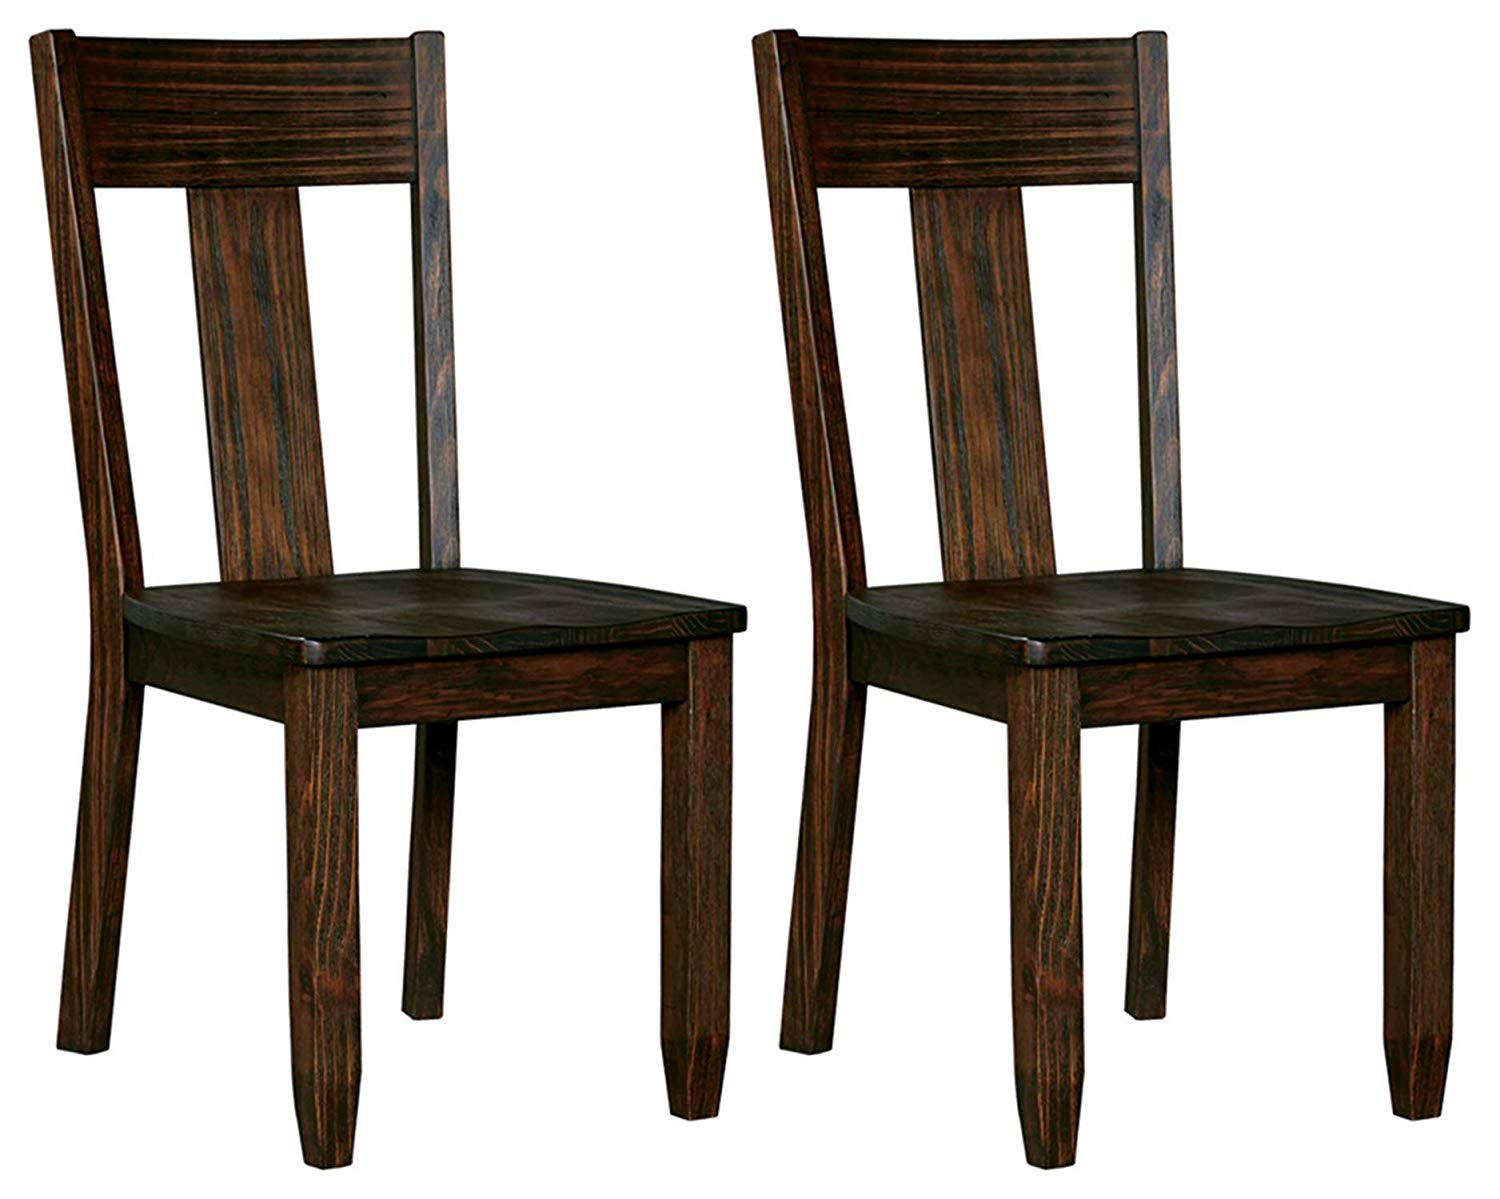 Ashely Furniture Signature Design- Trudell Dining Room Chair- 100% Pine Wood- Set of 2 – Dark brown